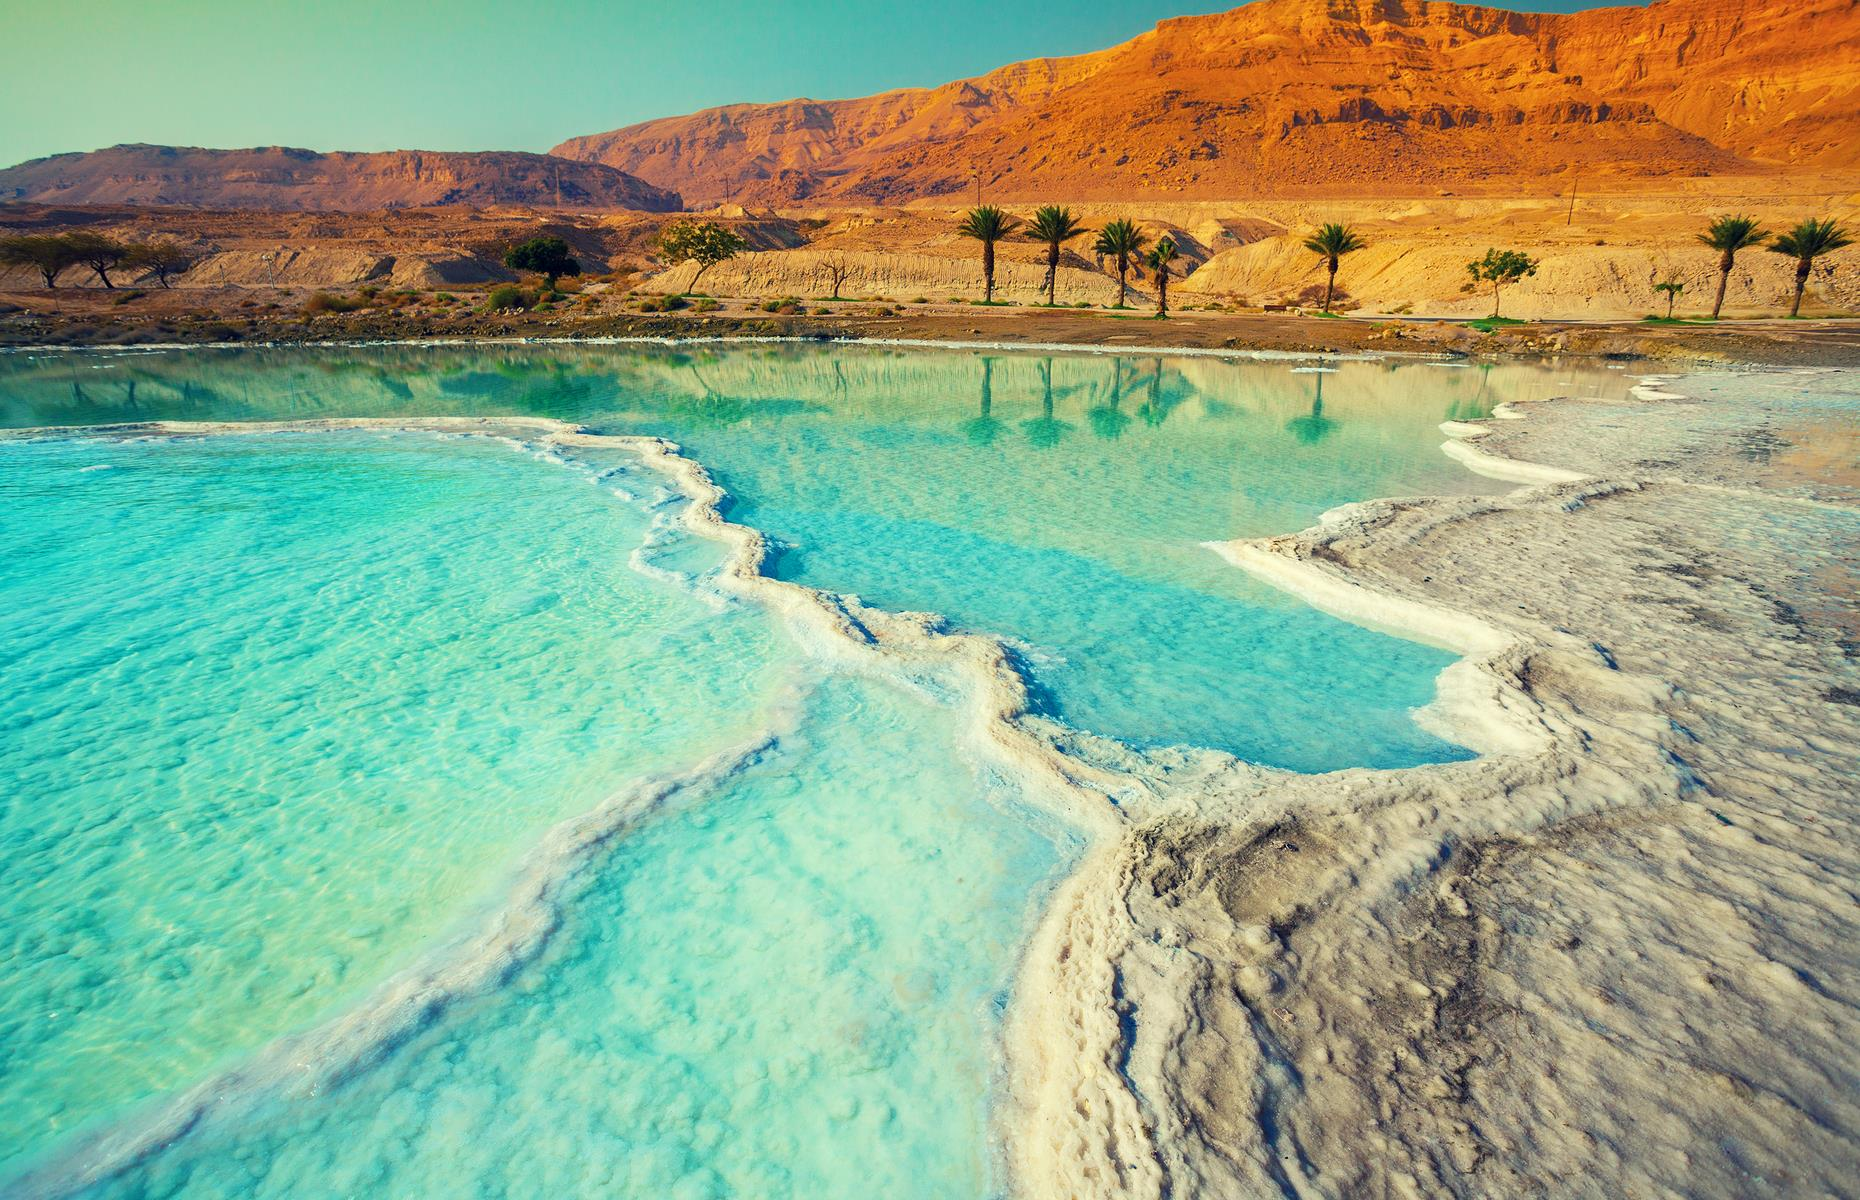 Slide 20 of 37: Bordered by Jordan and Israel, the landlocked Dead Sea is the lowest body of water on Earth. The high concentration of salt in the water means that bathers can naturally float in it. However, the sea's waters are now receding and this is causing sinkholes to appear.